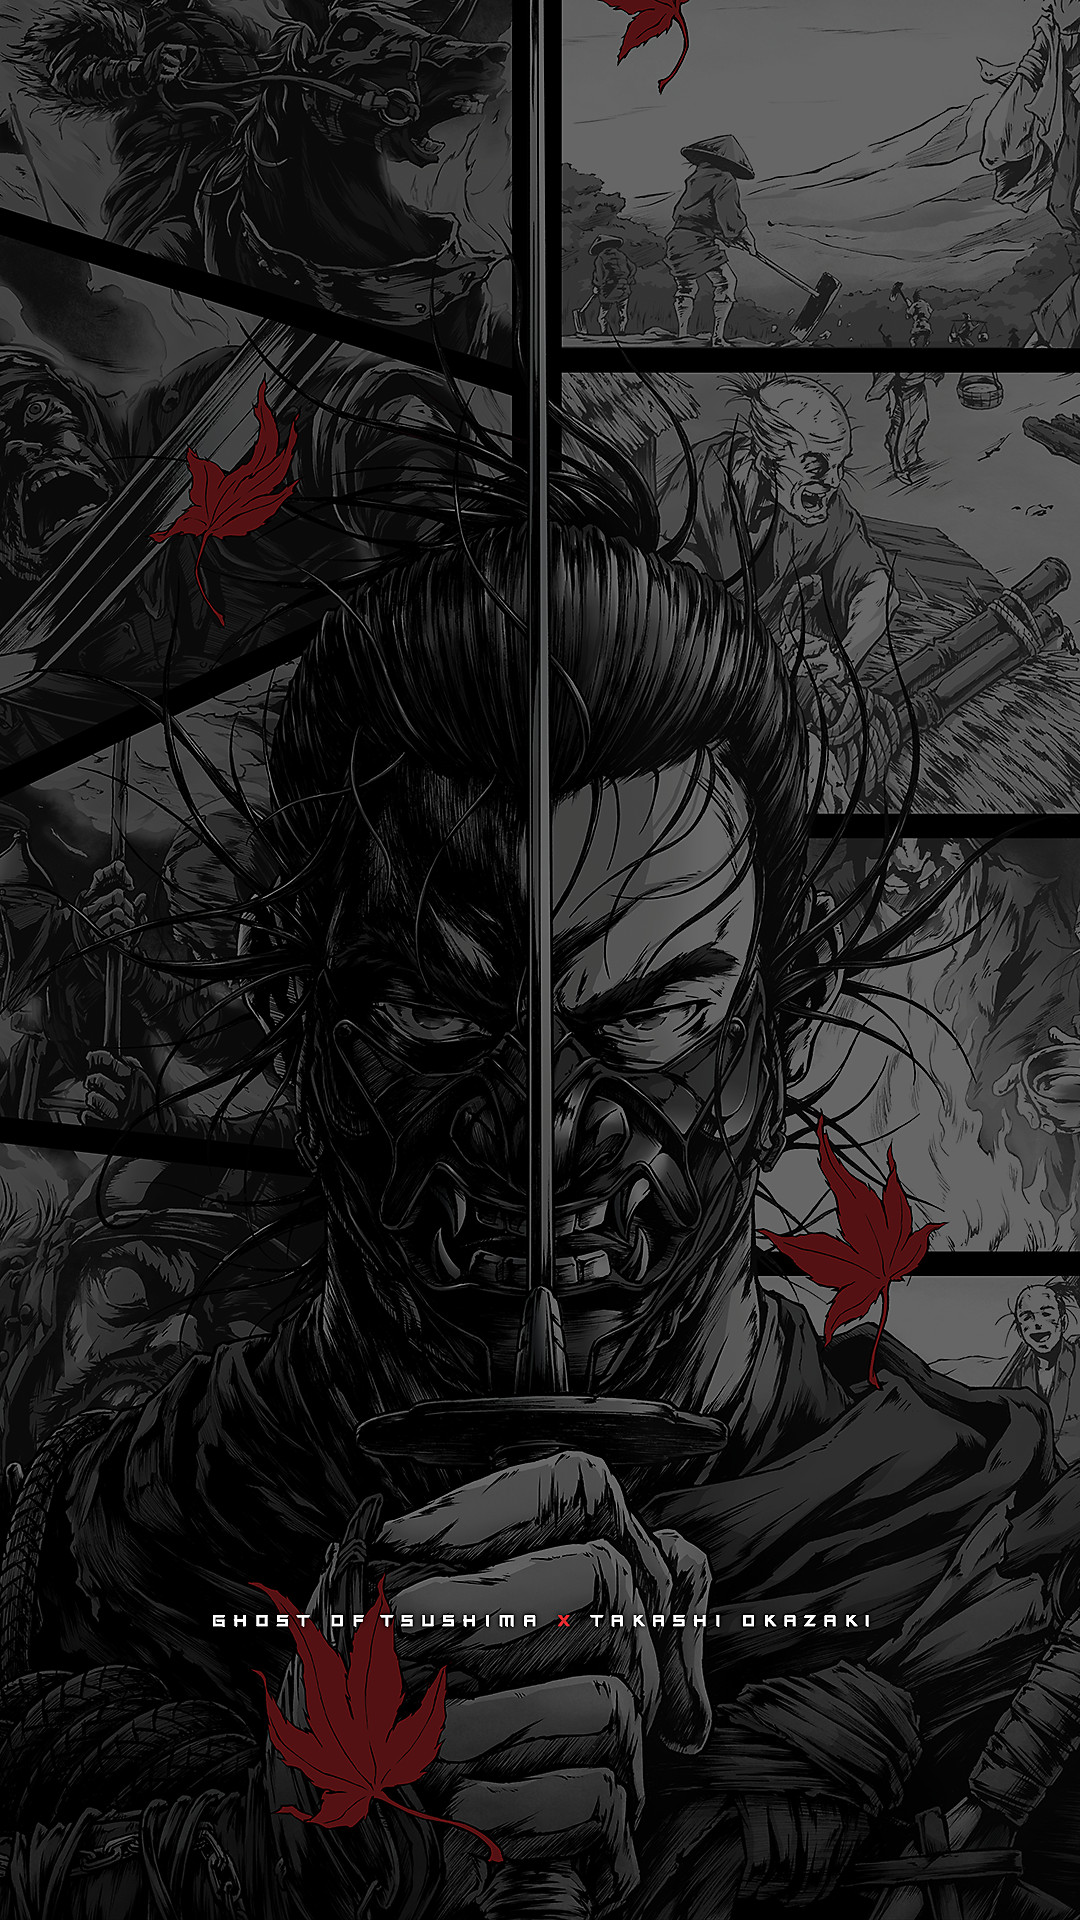 ghost of tsushima manga wallpaper 1